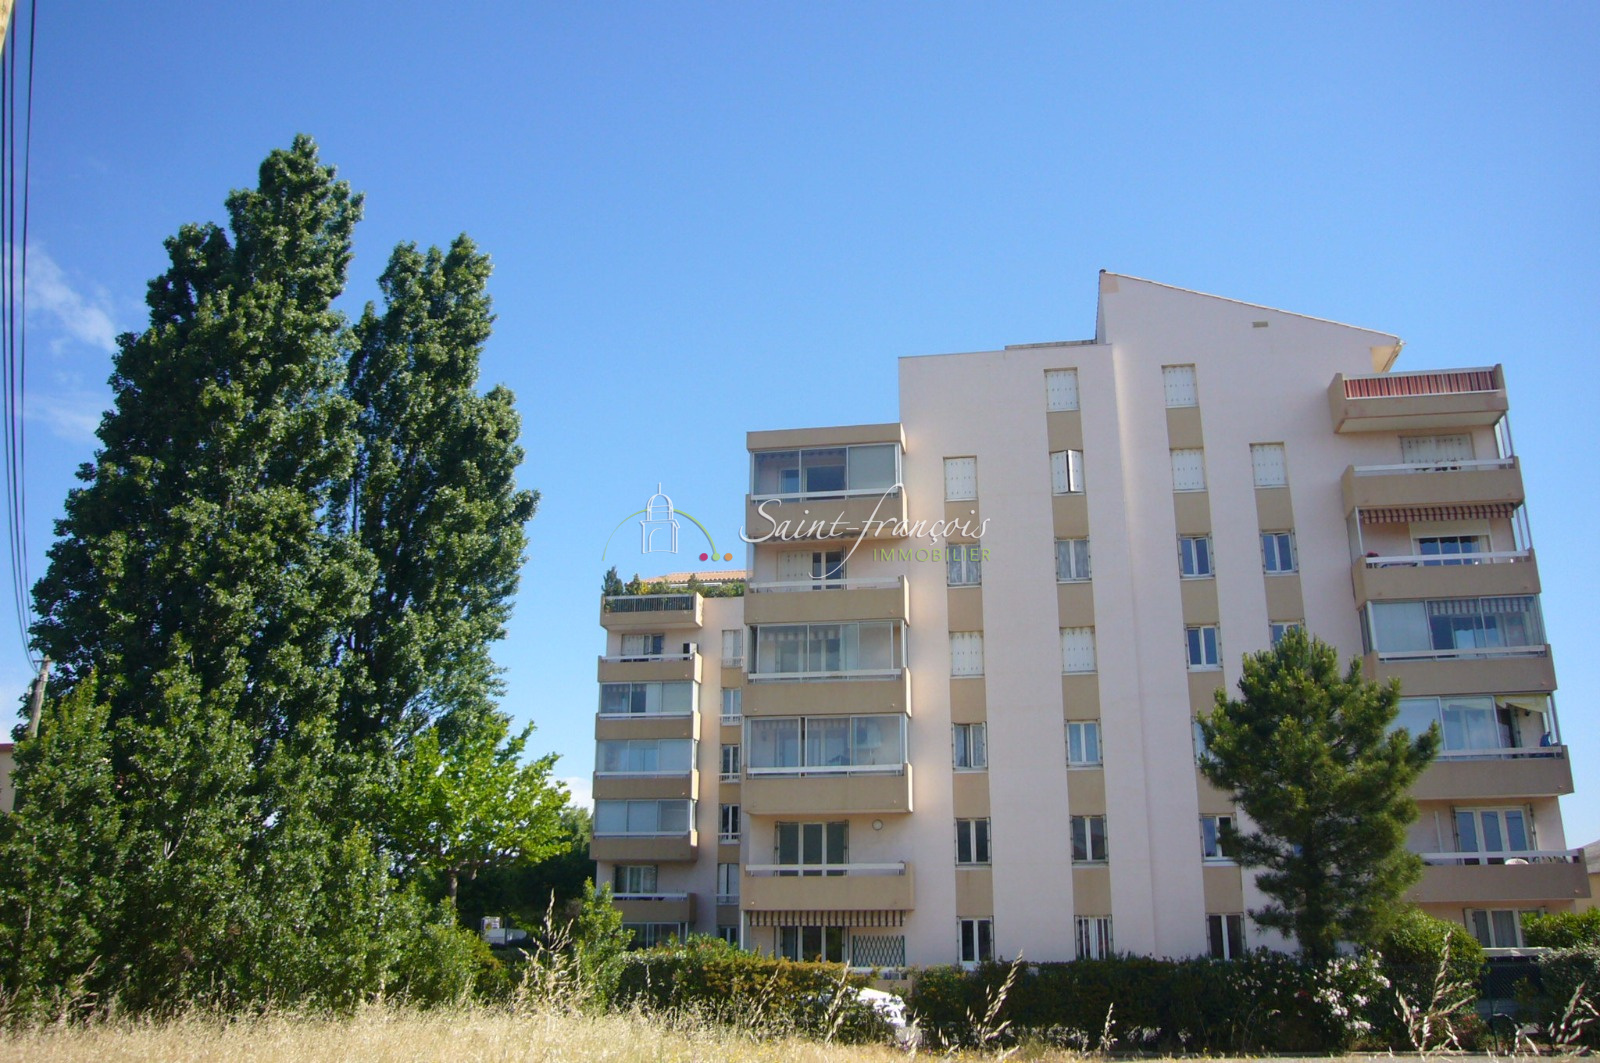 Vente fr jus quartier tassigny appartement f3 rdc cave parking for Vente appartement rdc